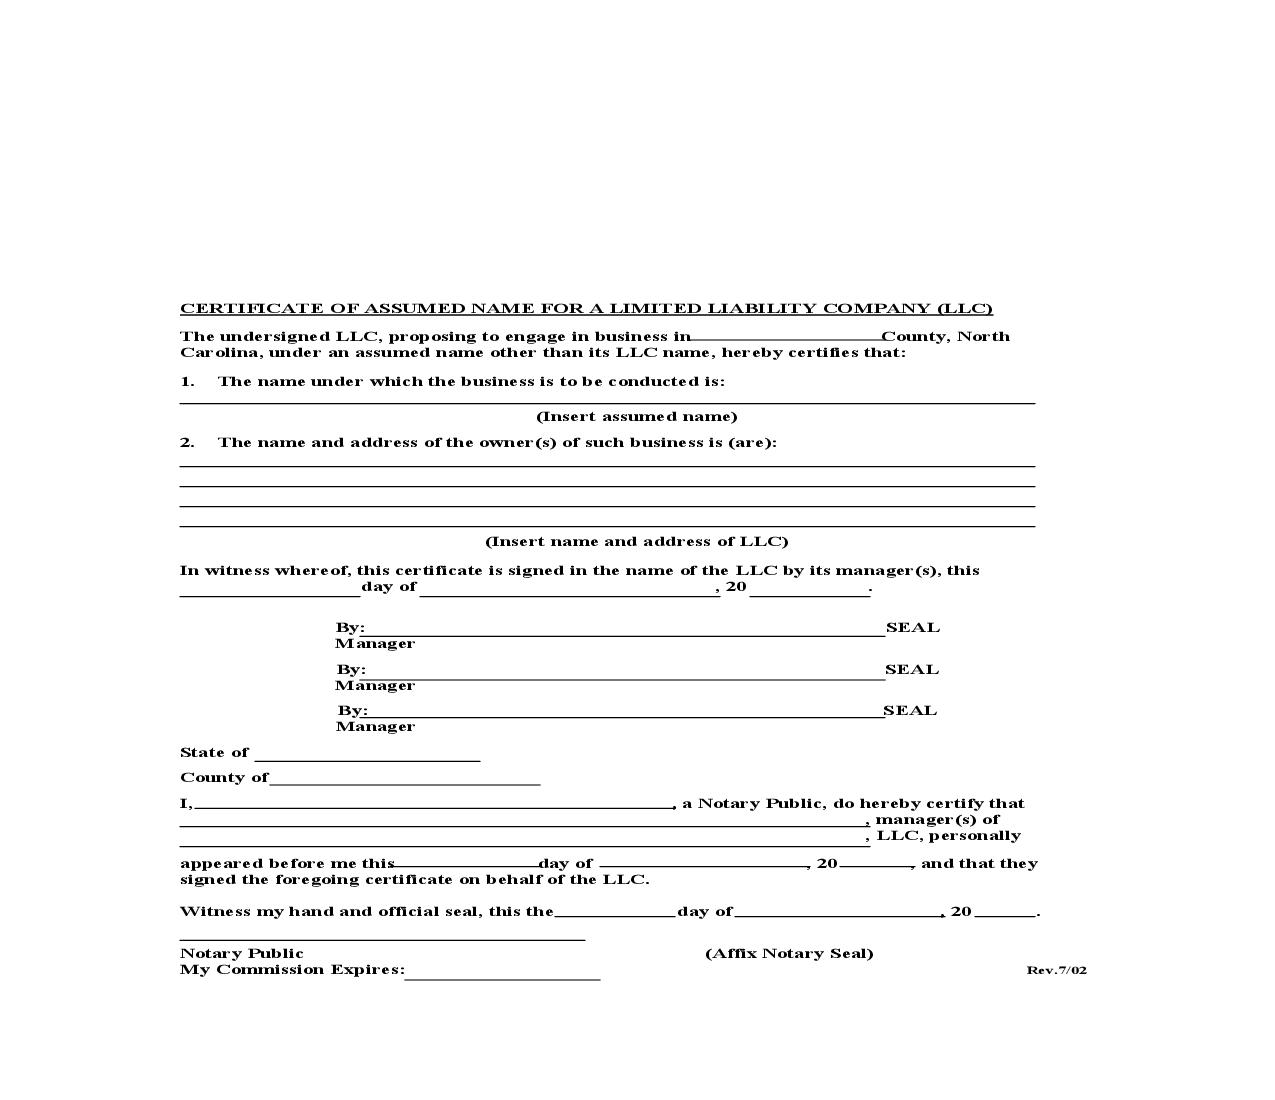 Certificate Of Assumed Name For Limited Liability Company   Pdf Fpdf Doc Docx   North Carolina